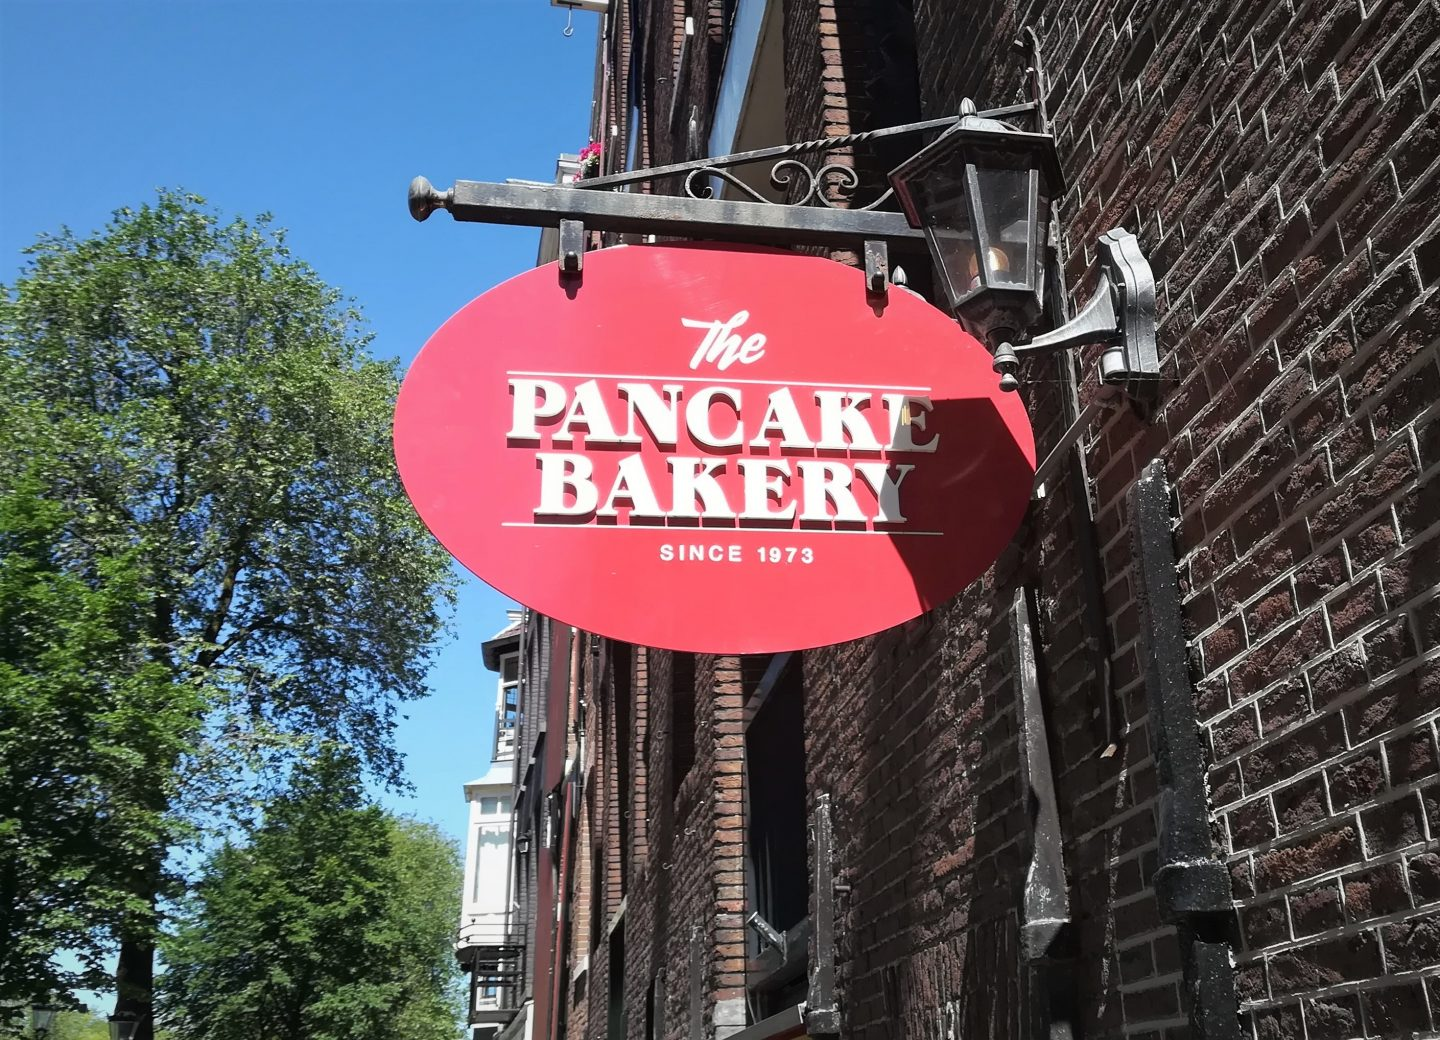 Pancake Bakery Amsterdam sign